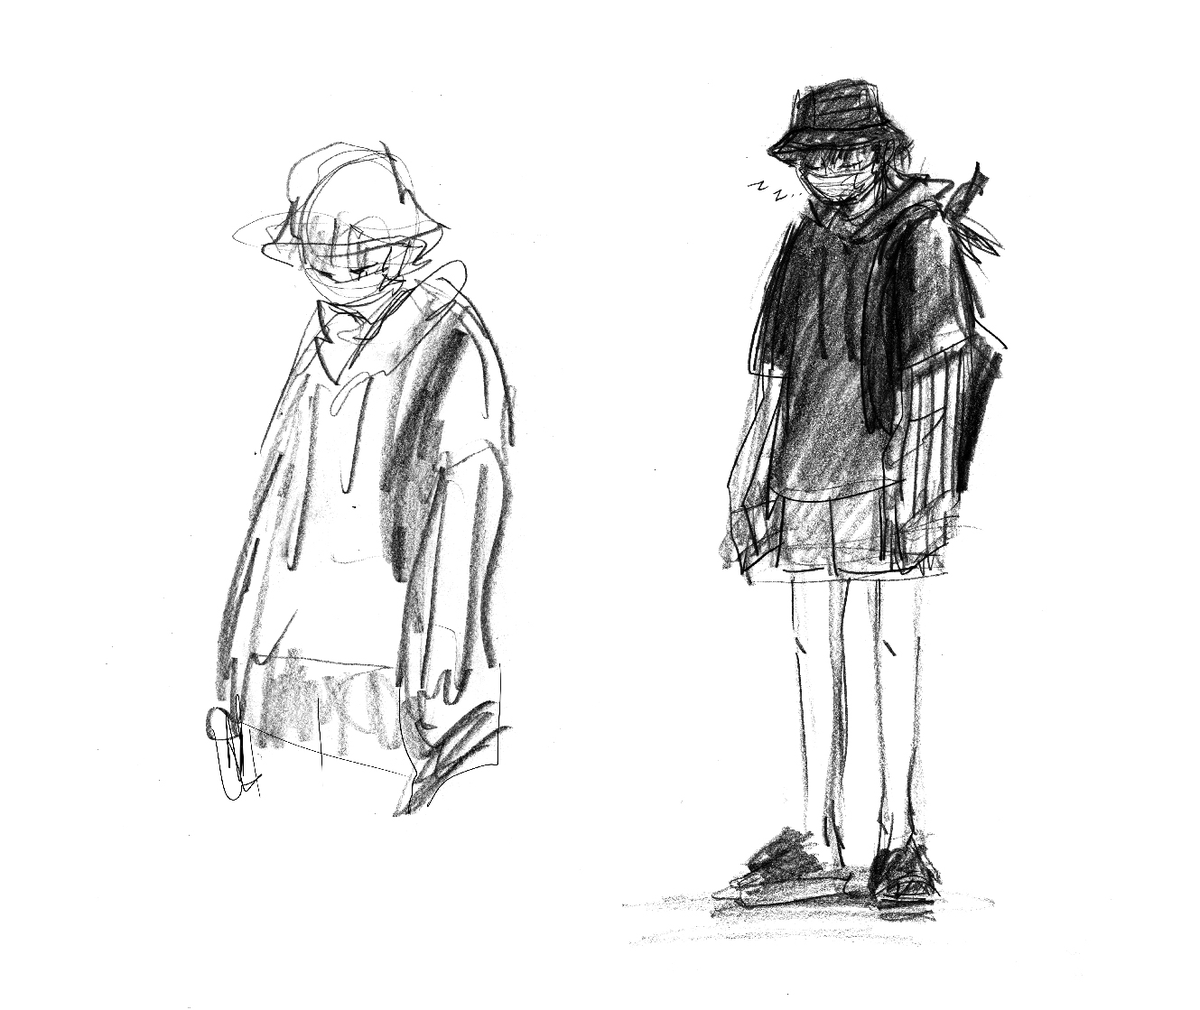 Liadh On Twitter The Absolute Hypocrisy Of Me Drawing This Outfit Yoongi Wore To The Airport But If I Actually Saw A Grown Man Walking Around In A Bucket Hat Hoodie Shorts